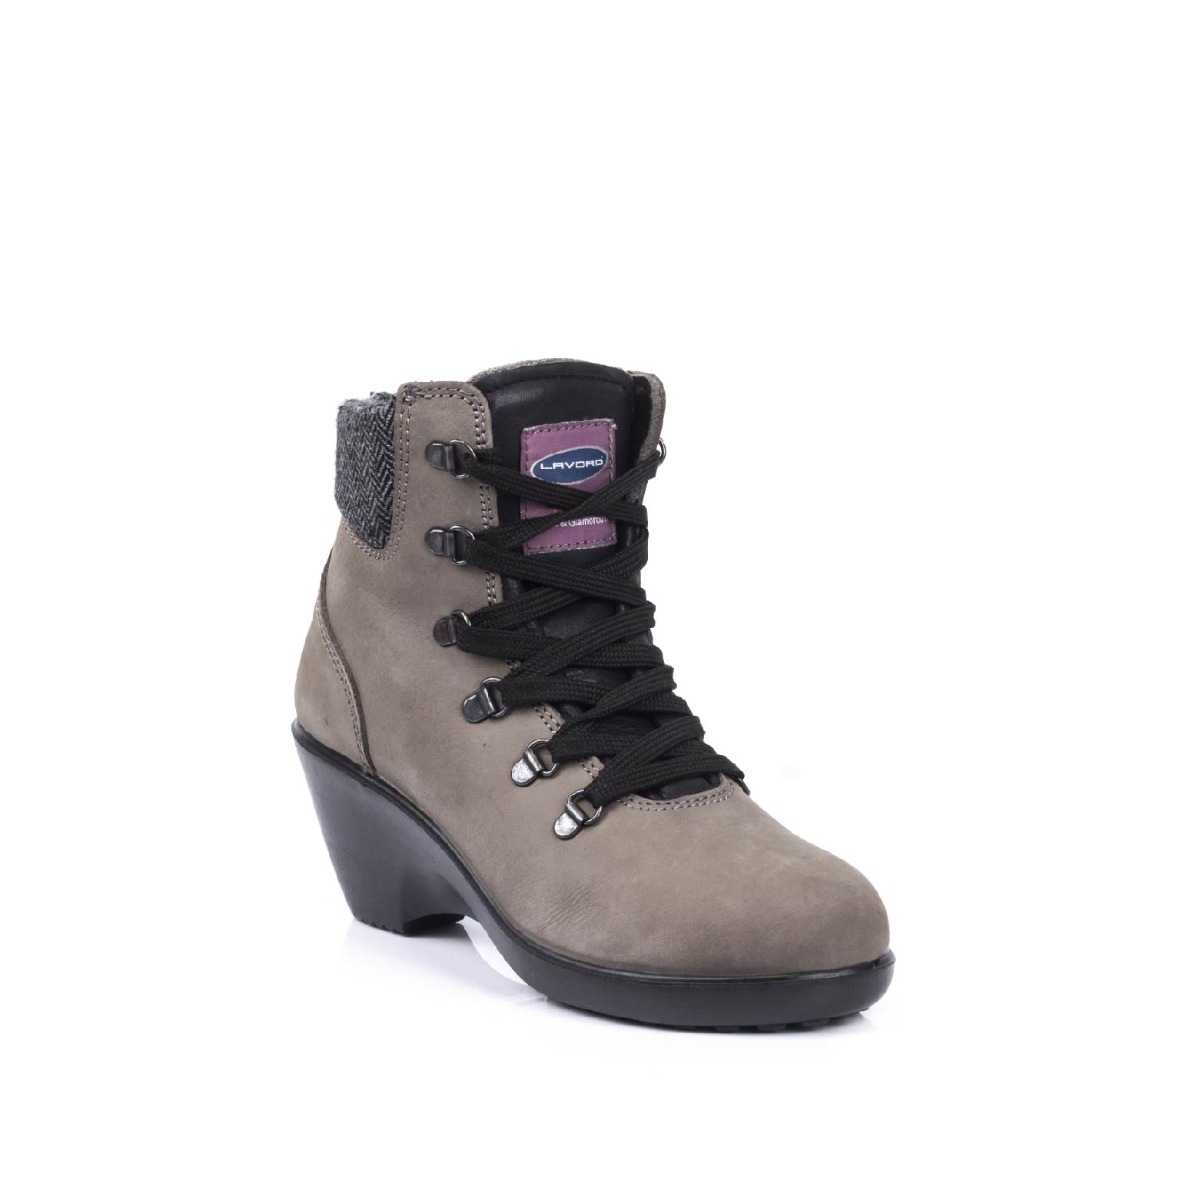 1033.06 LAVORO GEENA GREY HEELED SAFETY BOOT